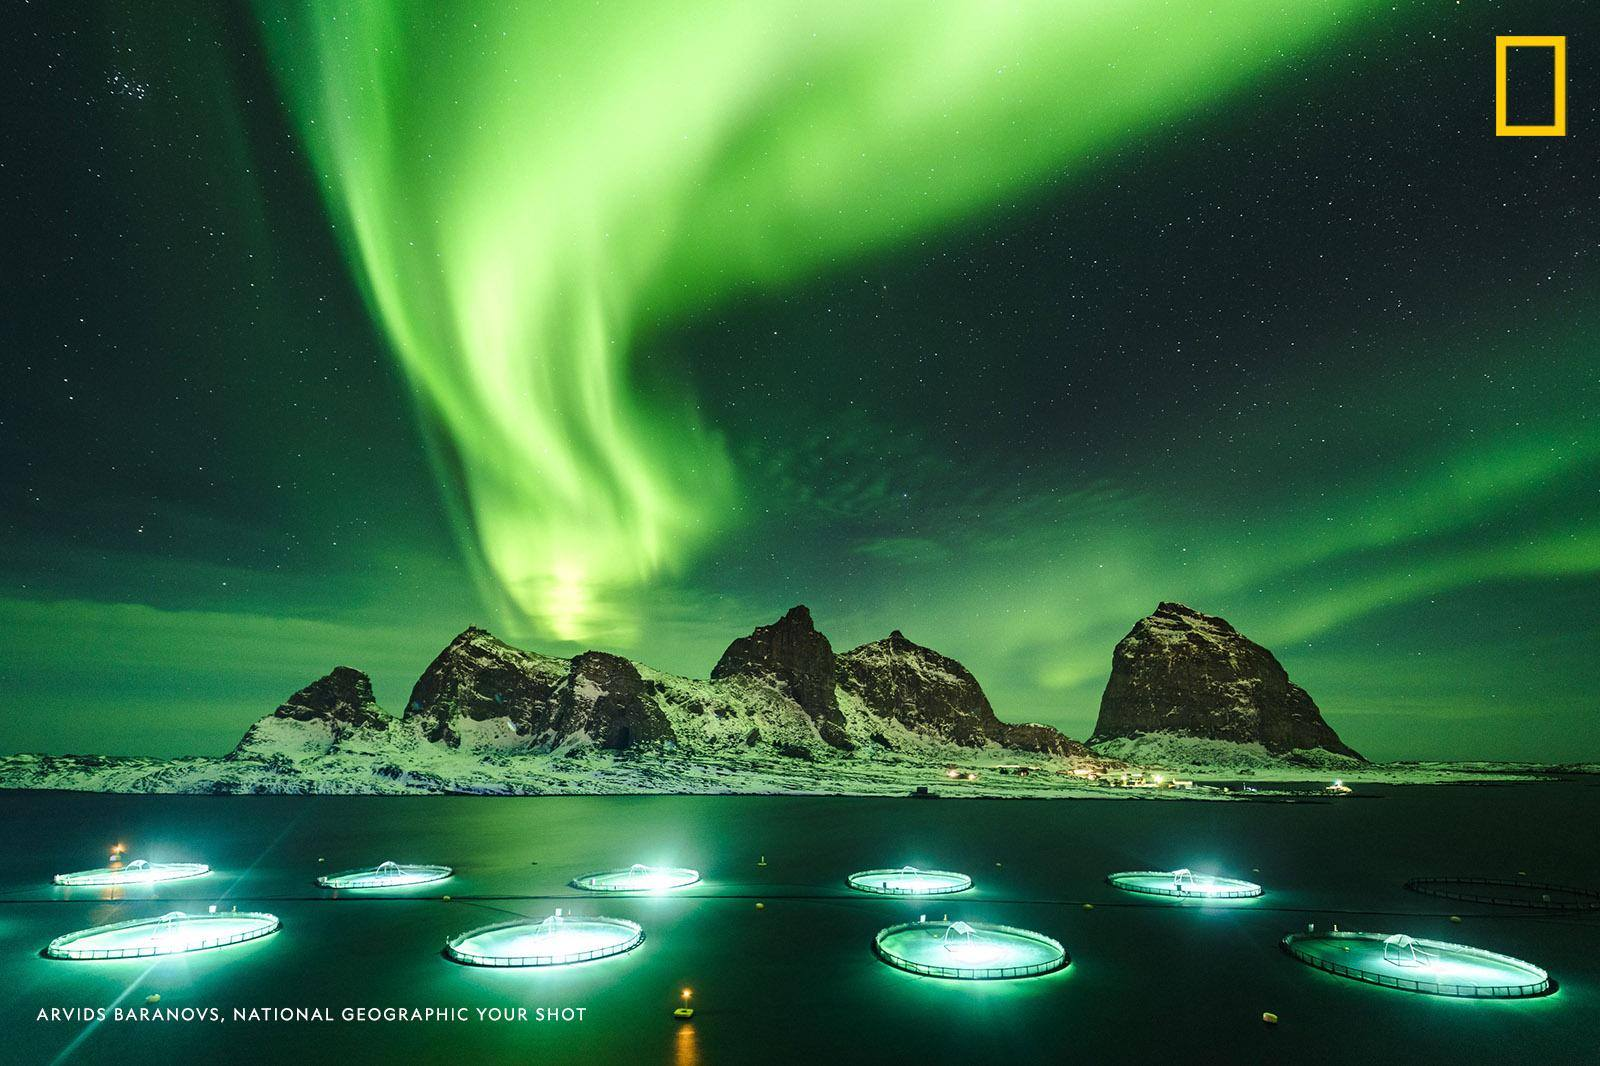 Northern lights dance over the iconic island of Sanna off the Norwegian coast in this long exposure image captured by Your Shot photographer Arvids Baranovs. https://on.natgeo.com/2TJbA7t